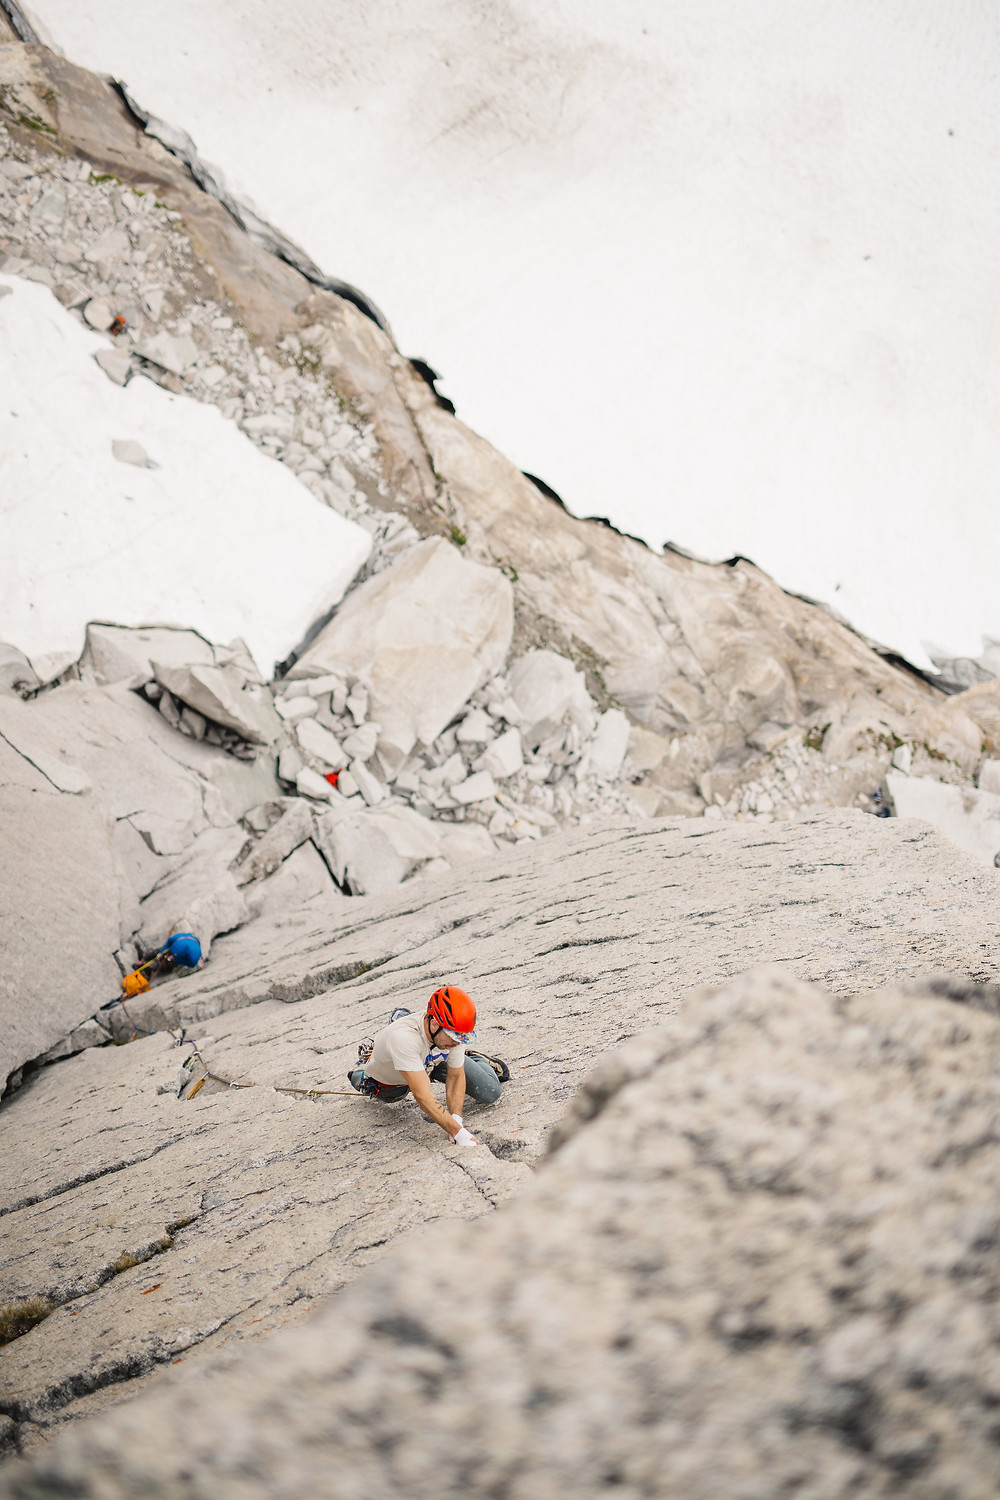 Climbing the crux pitch of McTech Arete